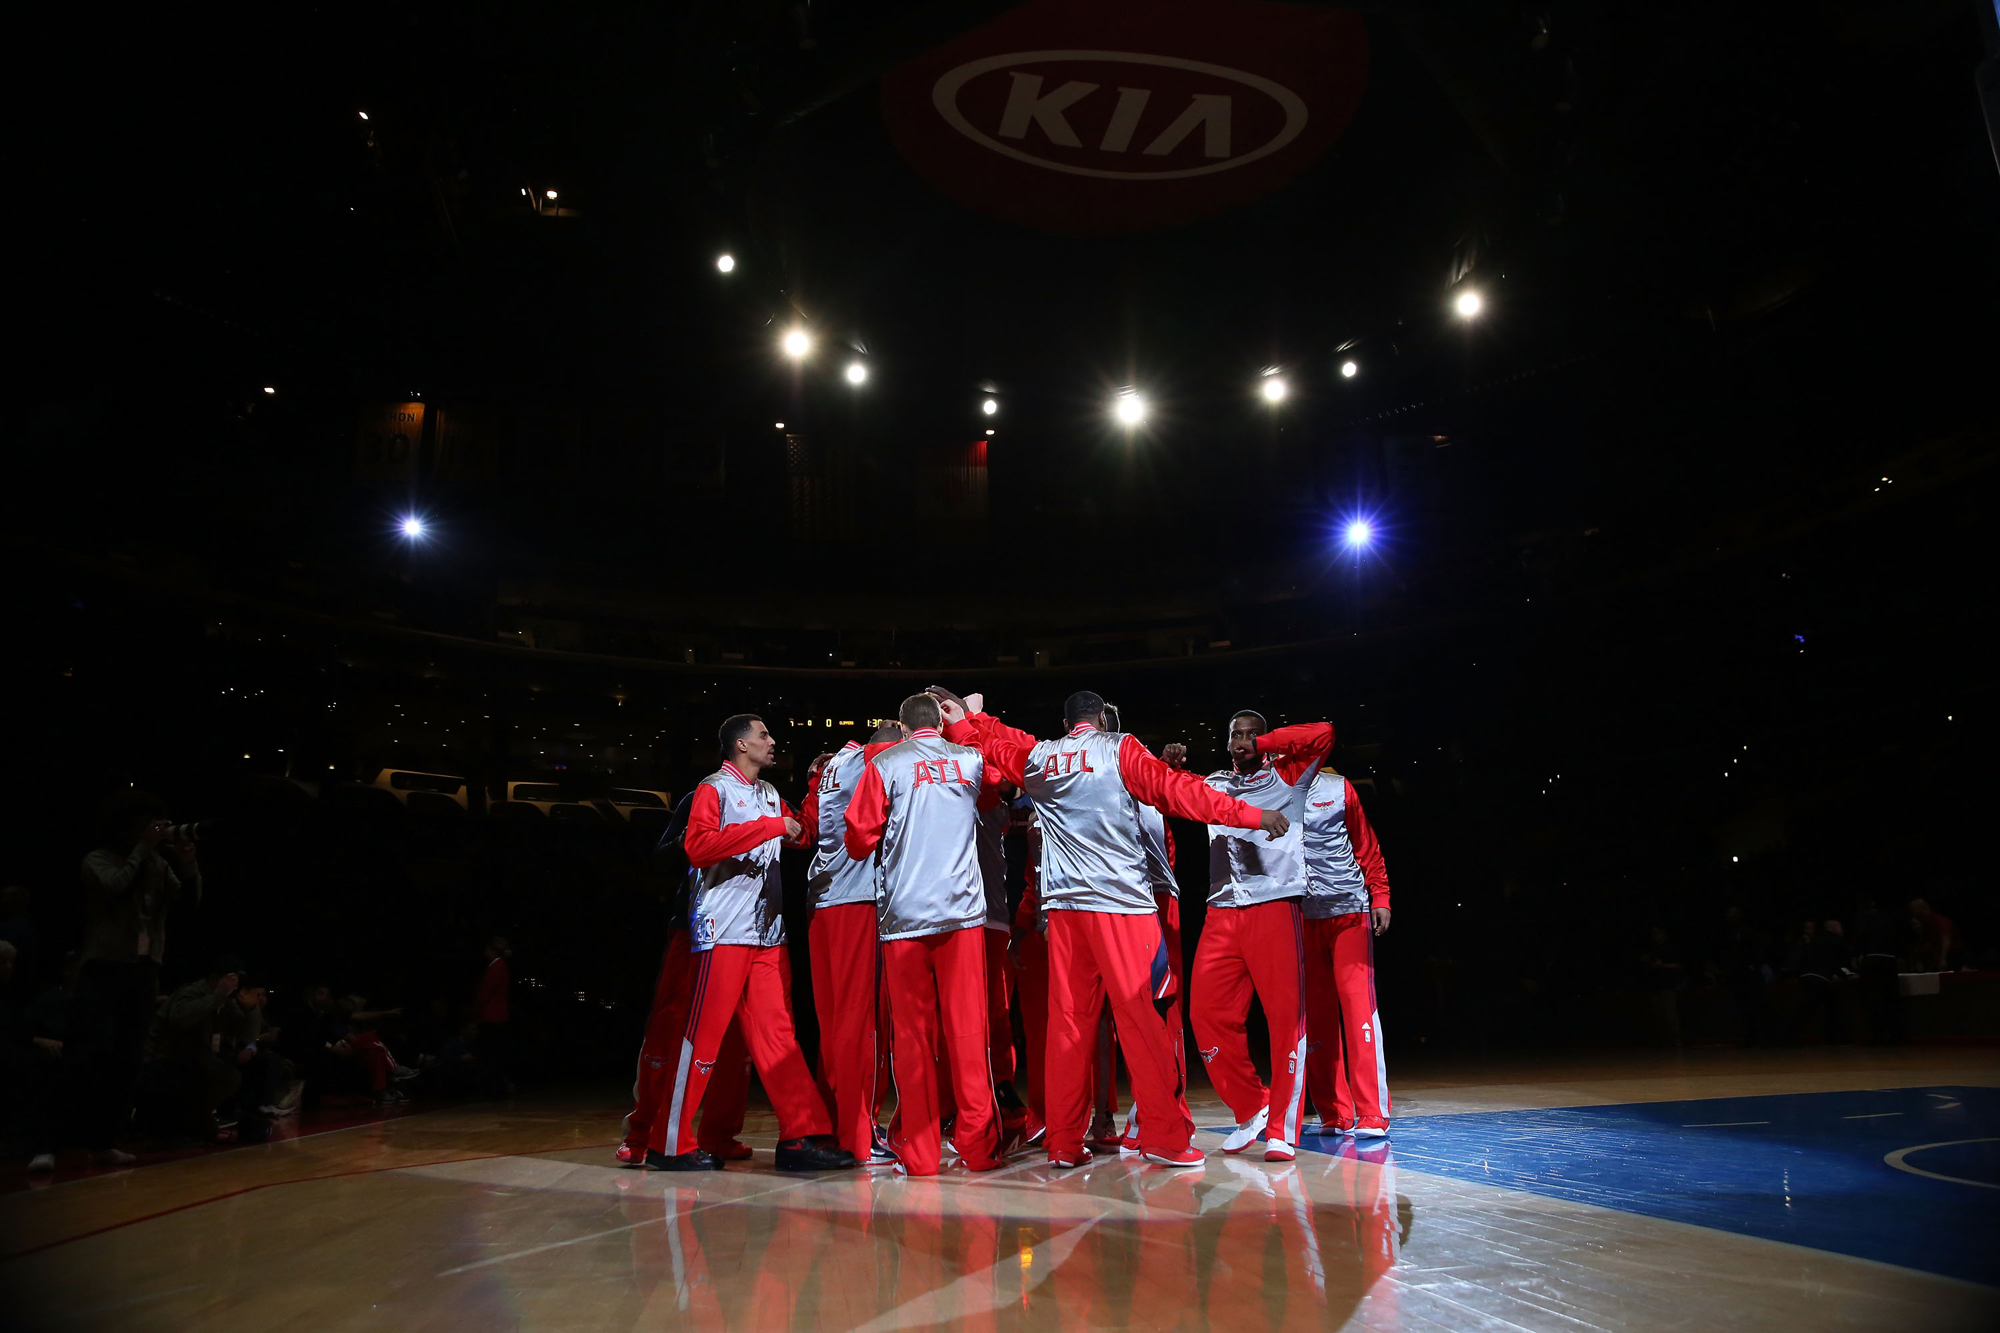 The Atlanta Hawks huddle together on the court prior to their NBA game against the Los Angeles Clippers at Staples Center on January 5, 2015 in Los Angeles, California.